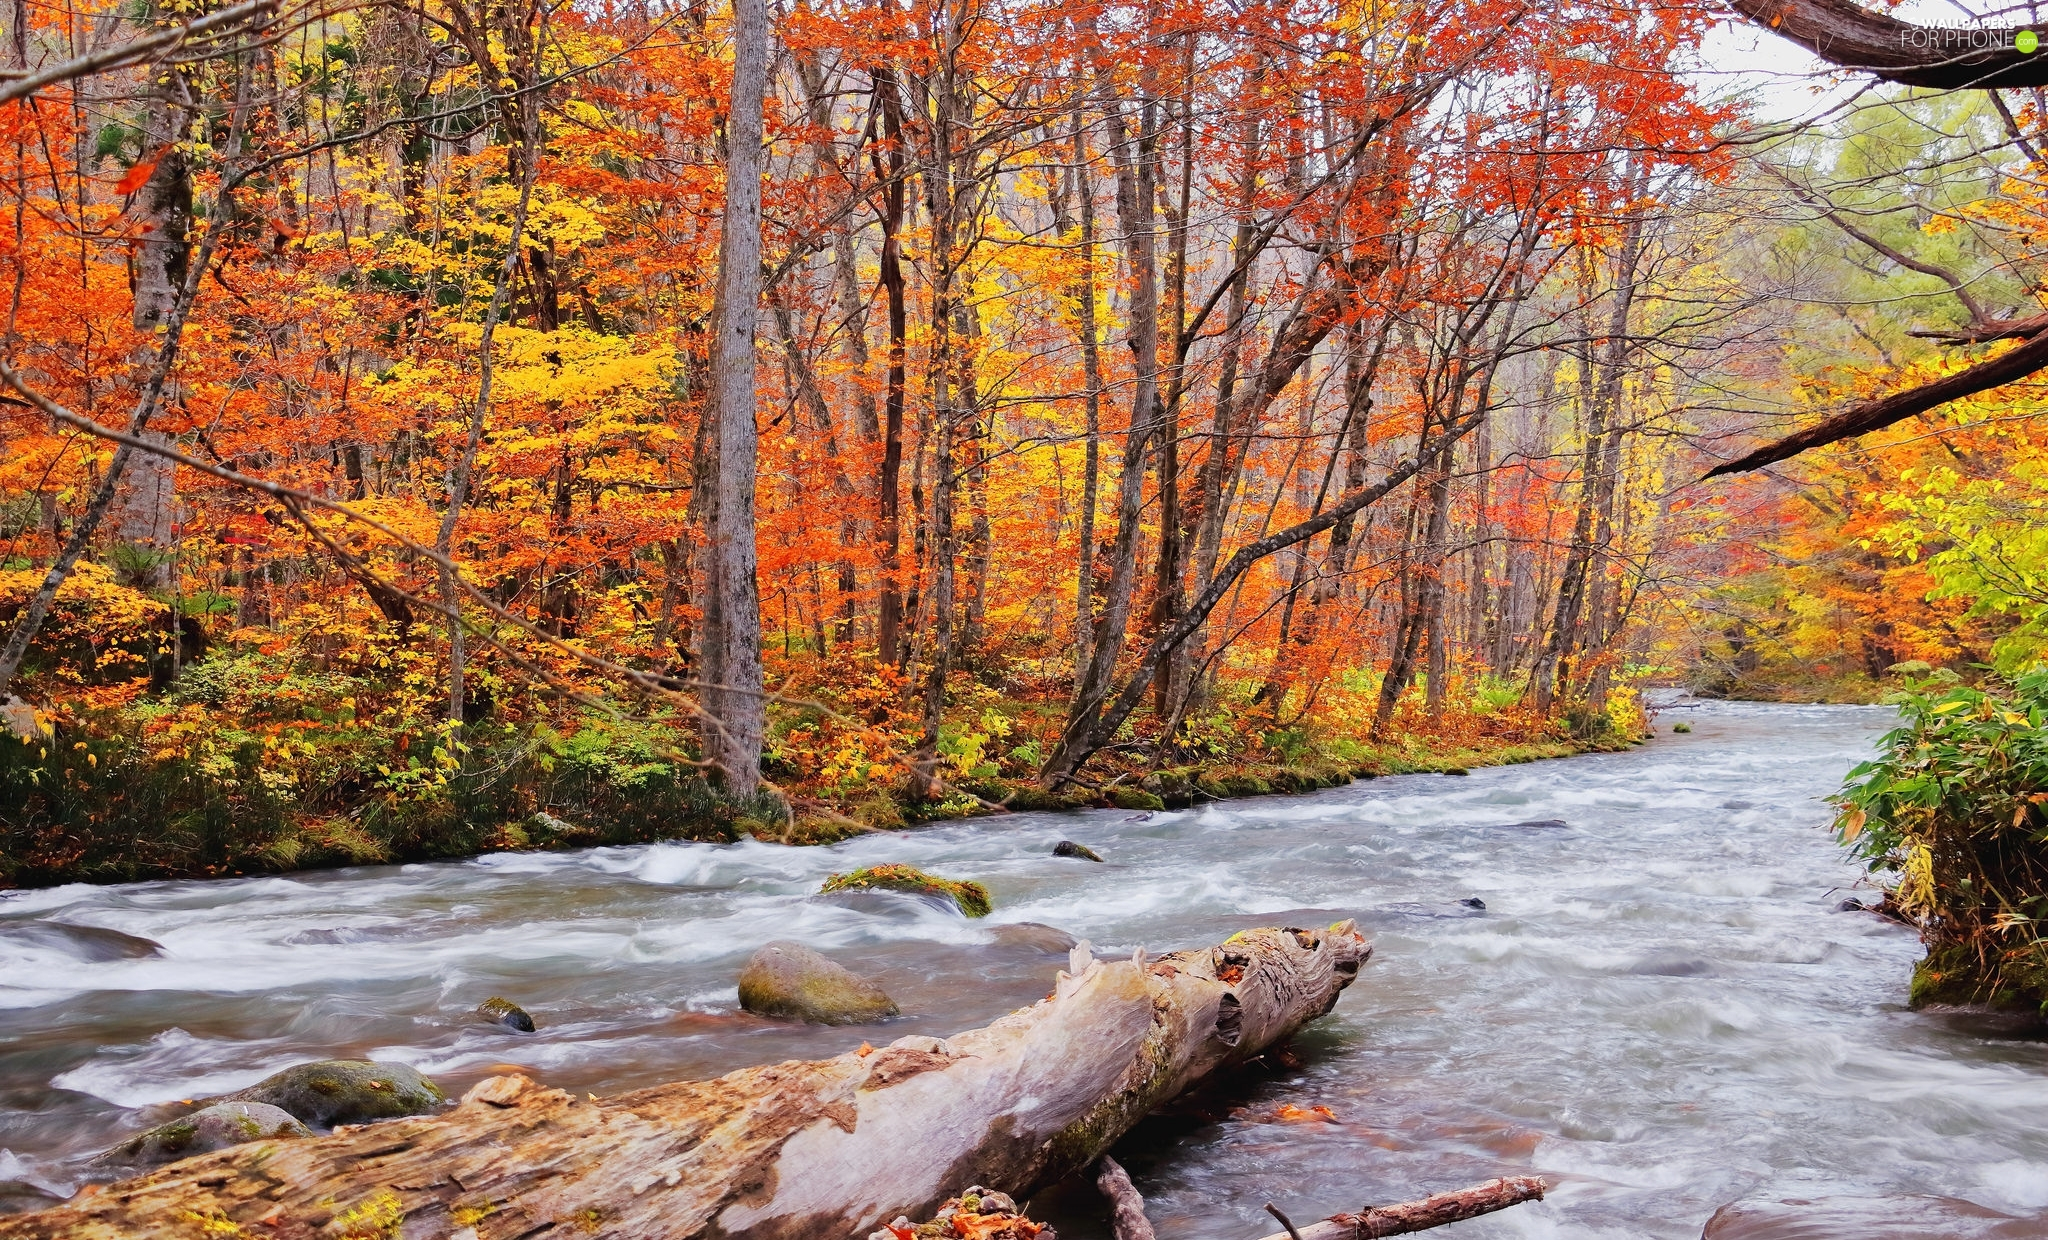 trees, River, VEGETATION, Stones, forest, viewes, autumn